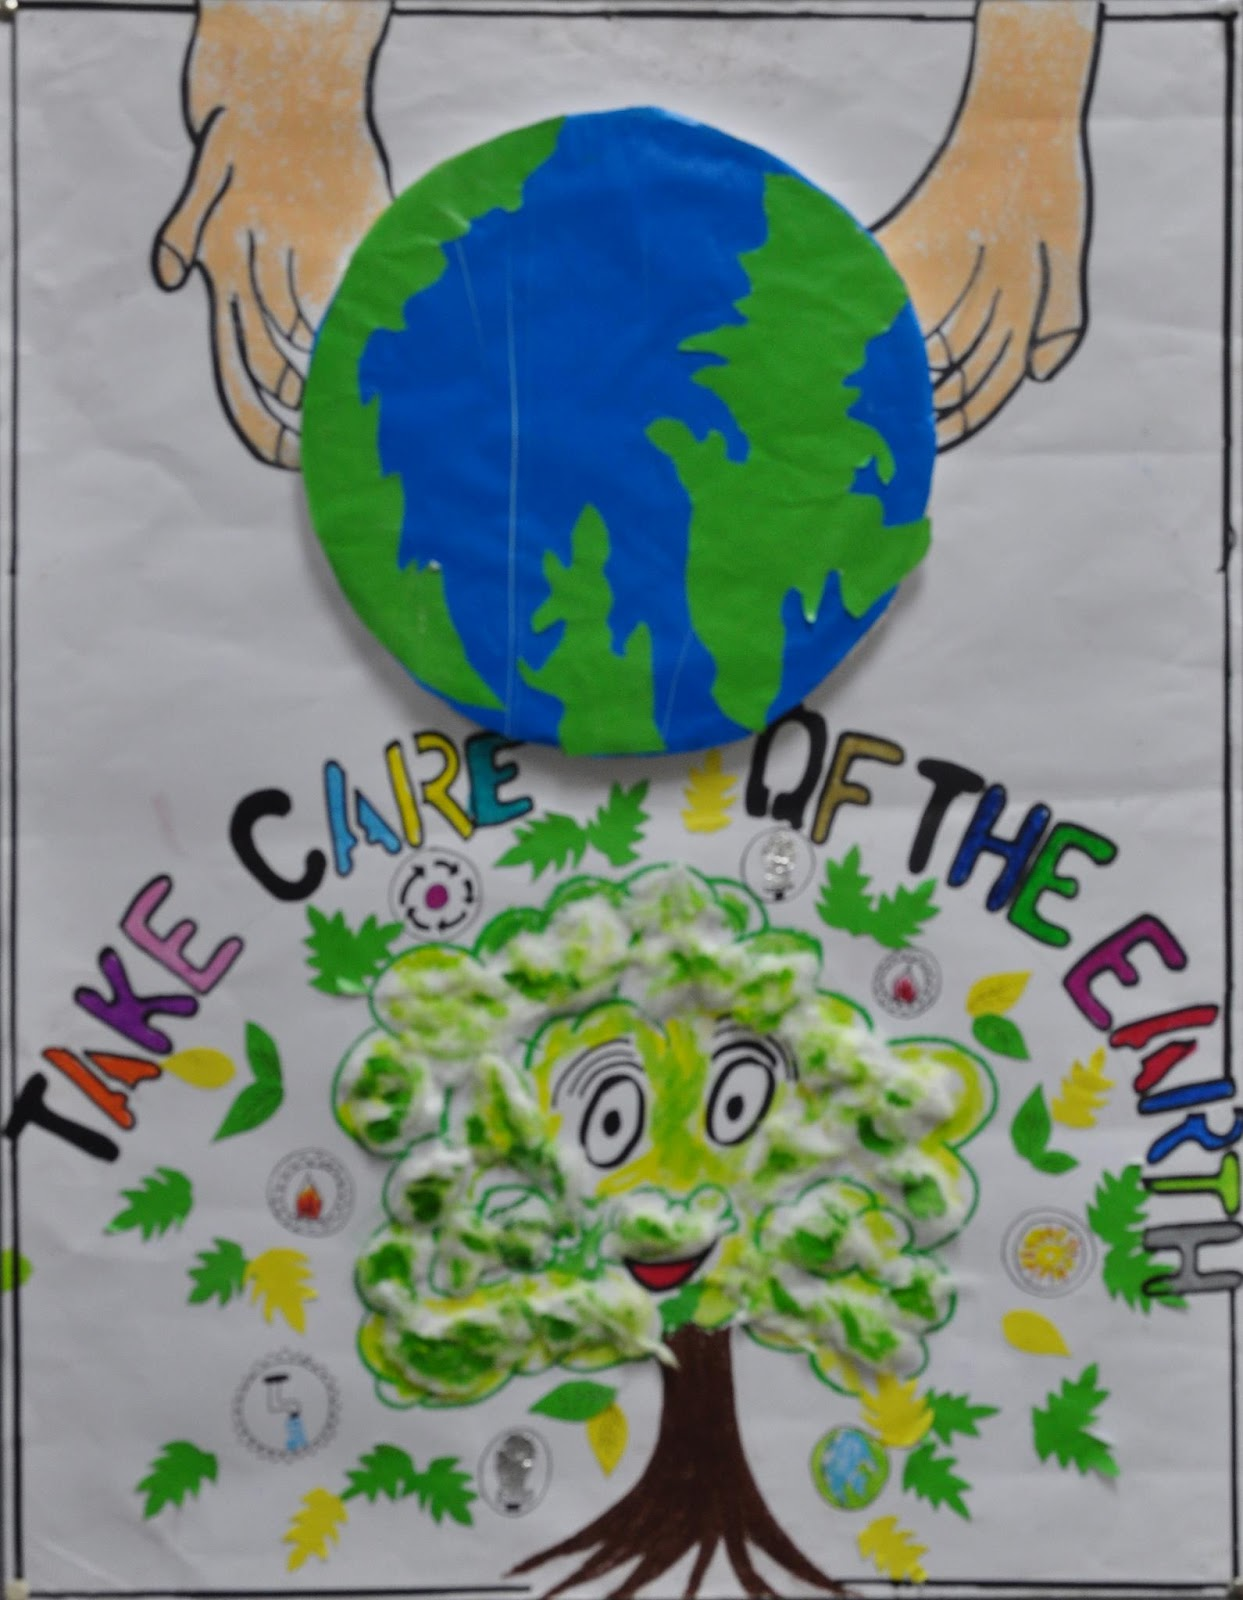 CJM Stands Out At The US Consulate Poster Competition EARTH DAY POSTER CONTEST